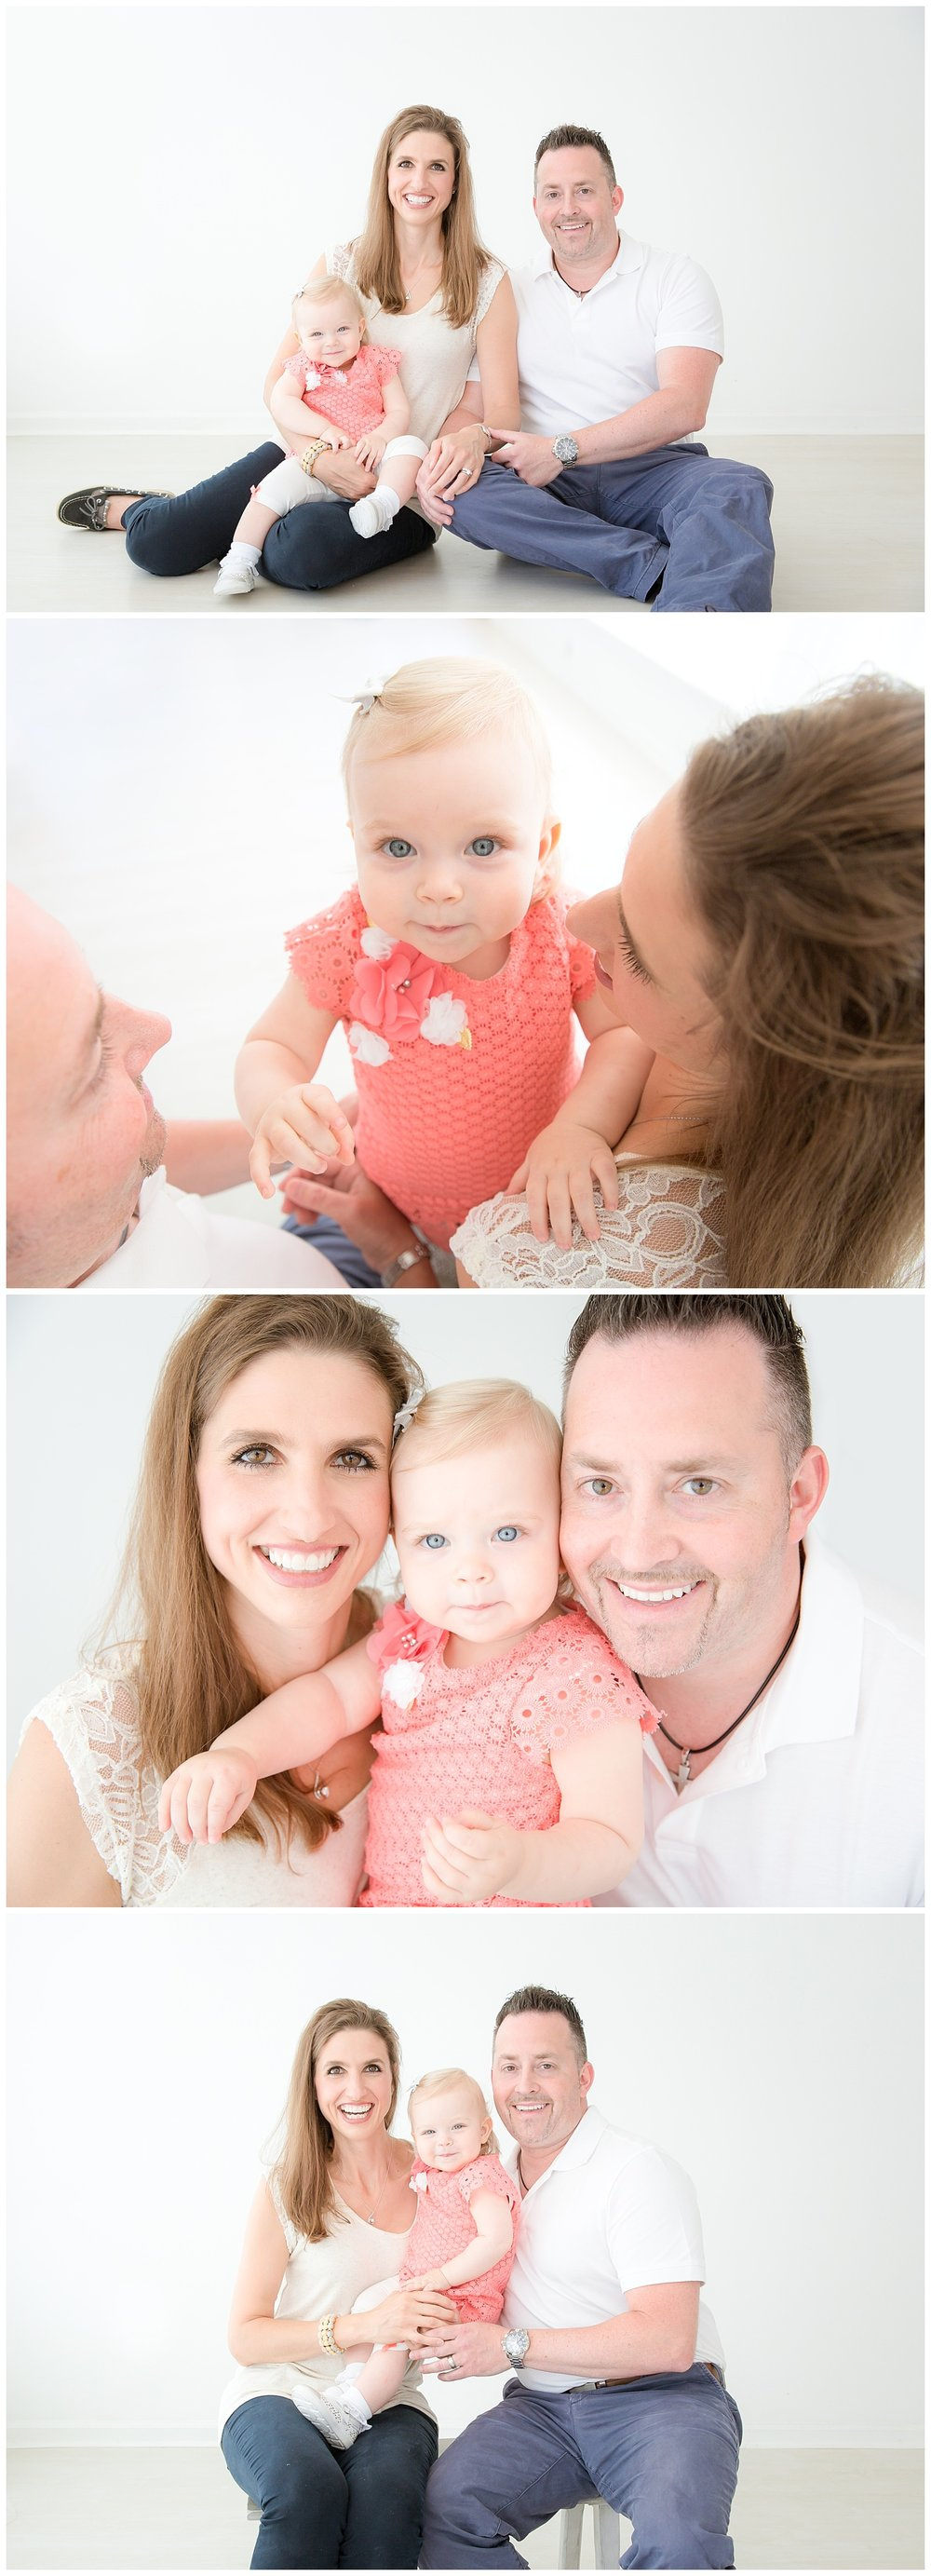 mom and dad snuggling their little girl who is wearing pink in moorestown new jersey photo studio